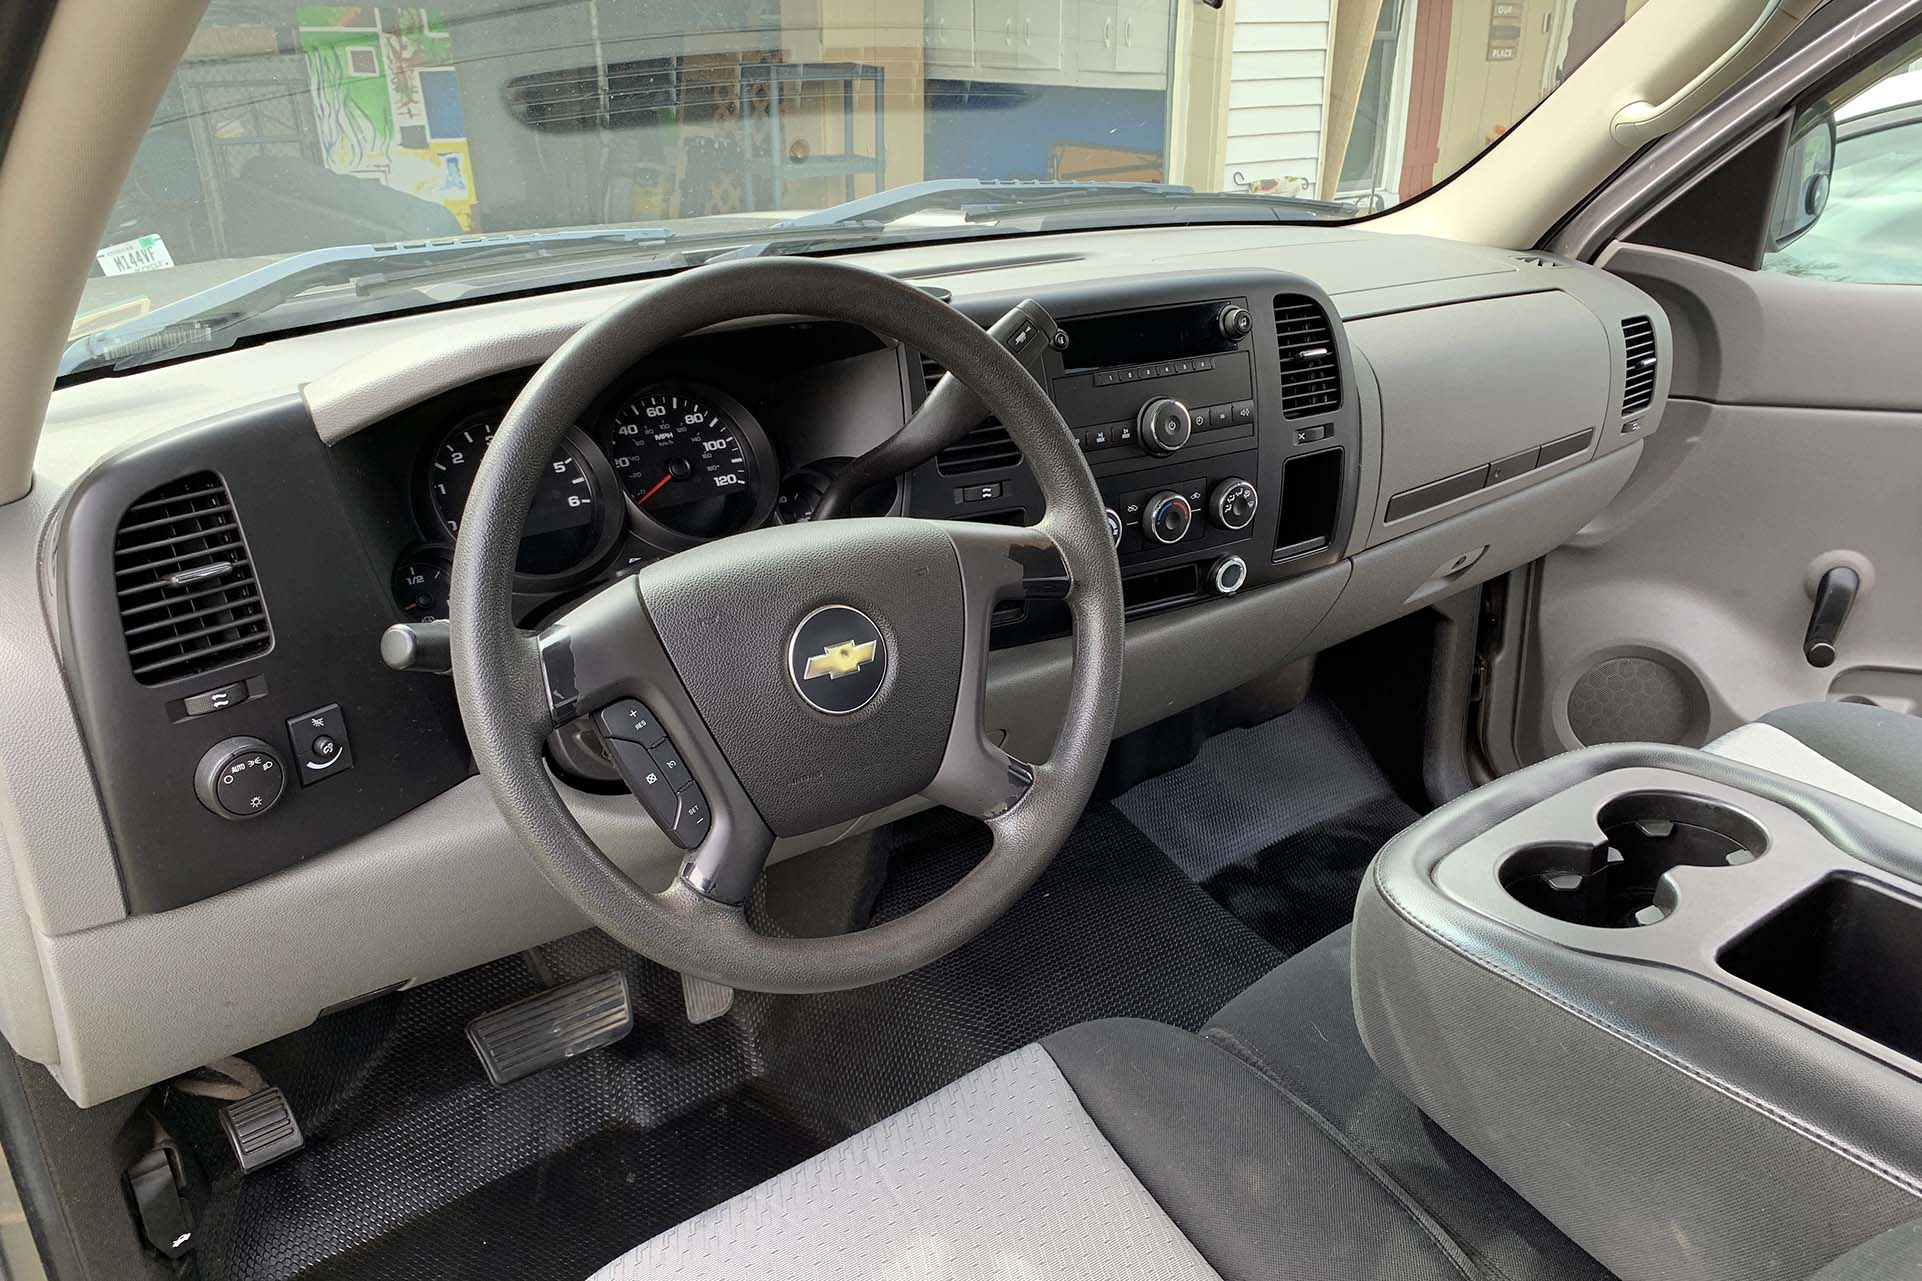 The interior of a Chevy Silverado work truck